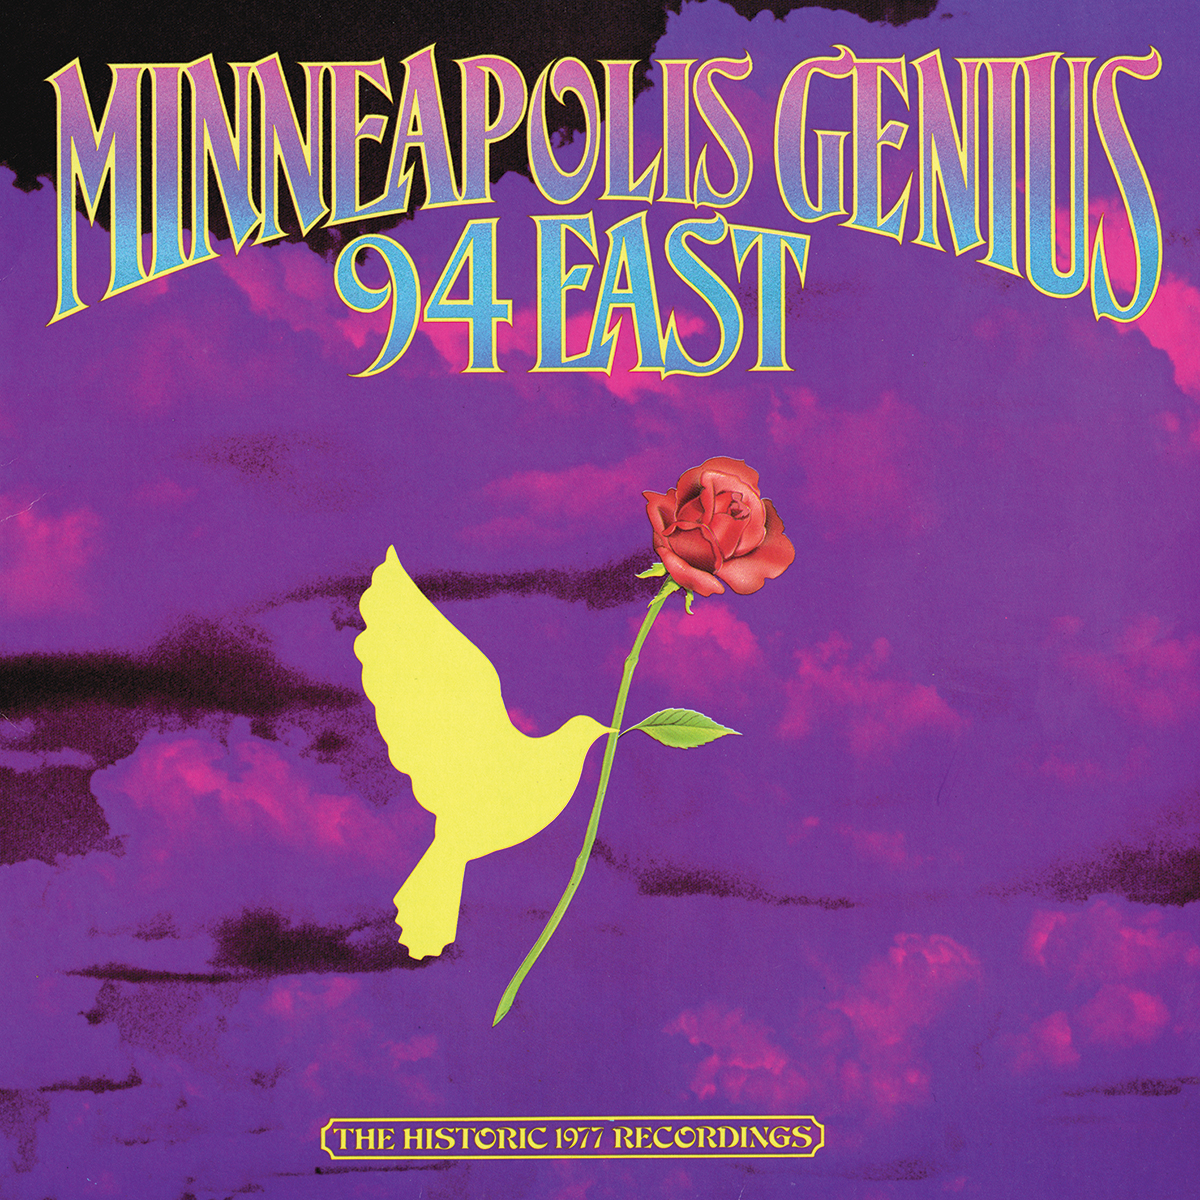 94 East <i>Minneapolis Genius</i>